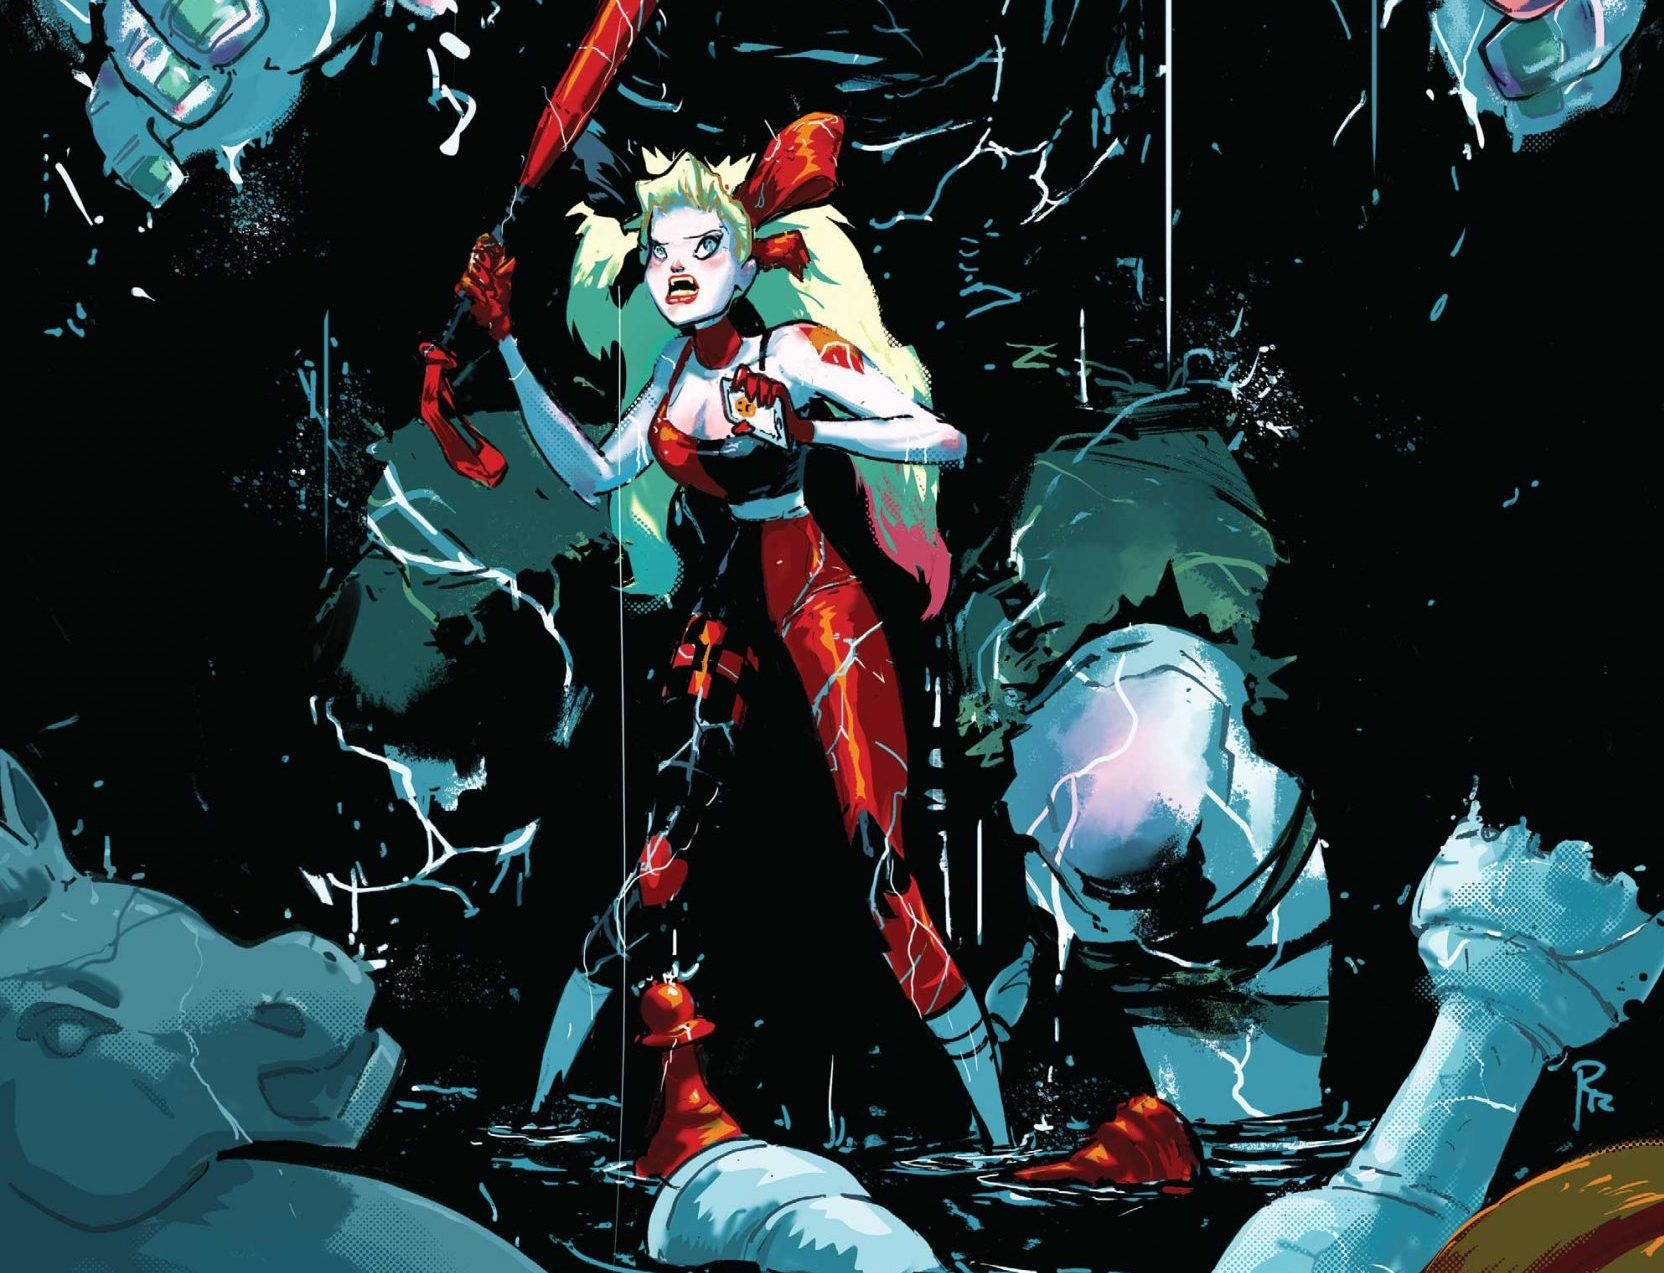 'Harley Quinn' #4 represents the perfect union between writer and artist